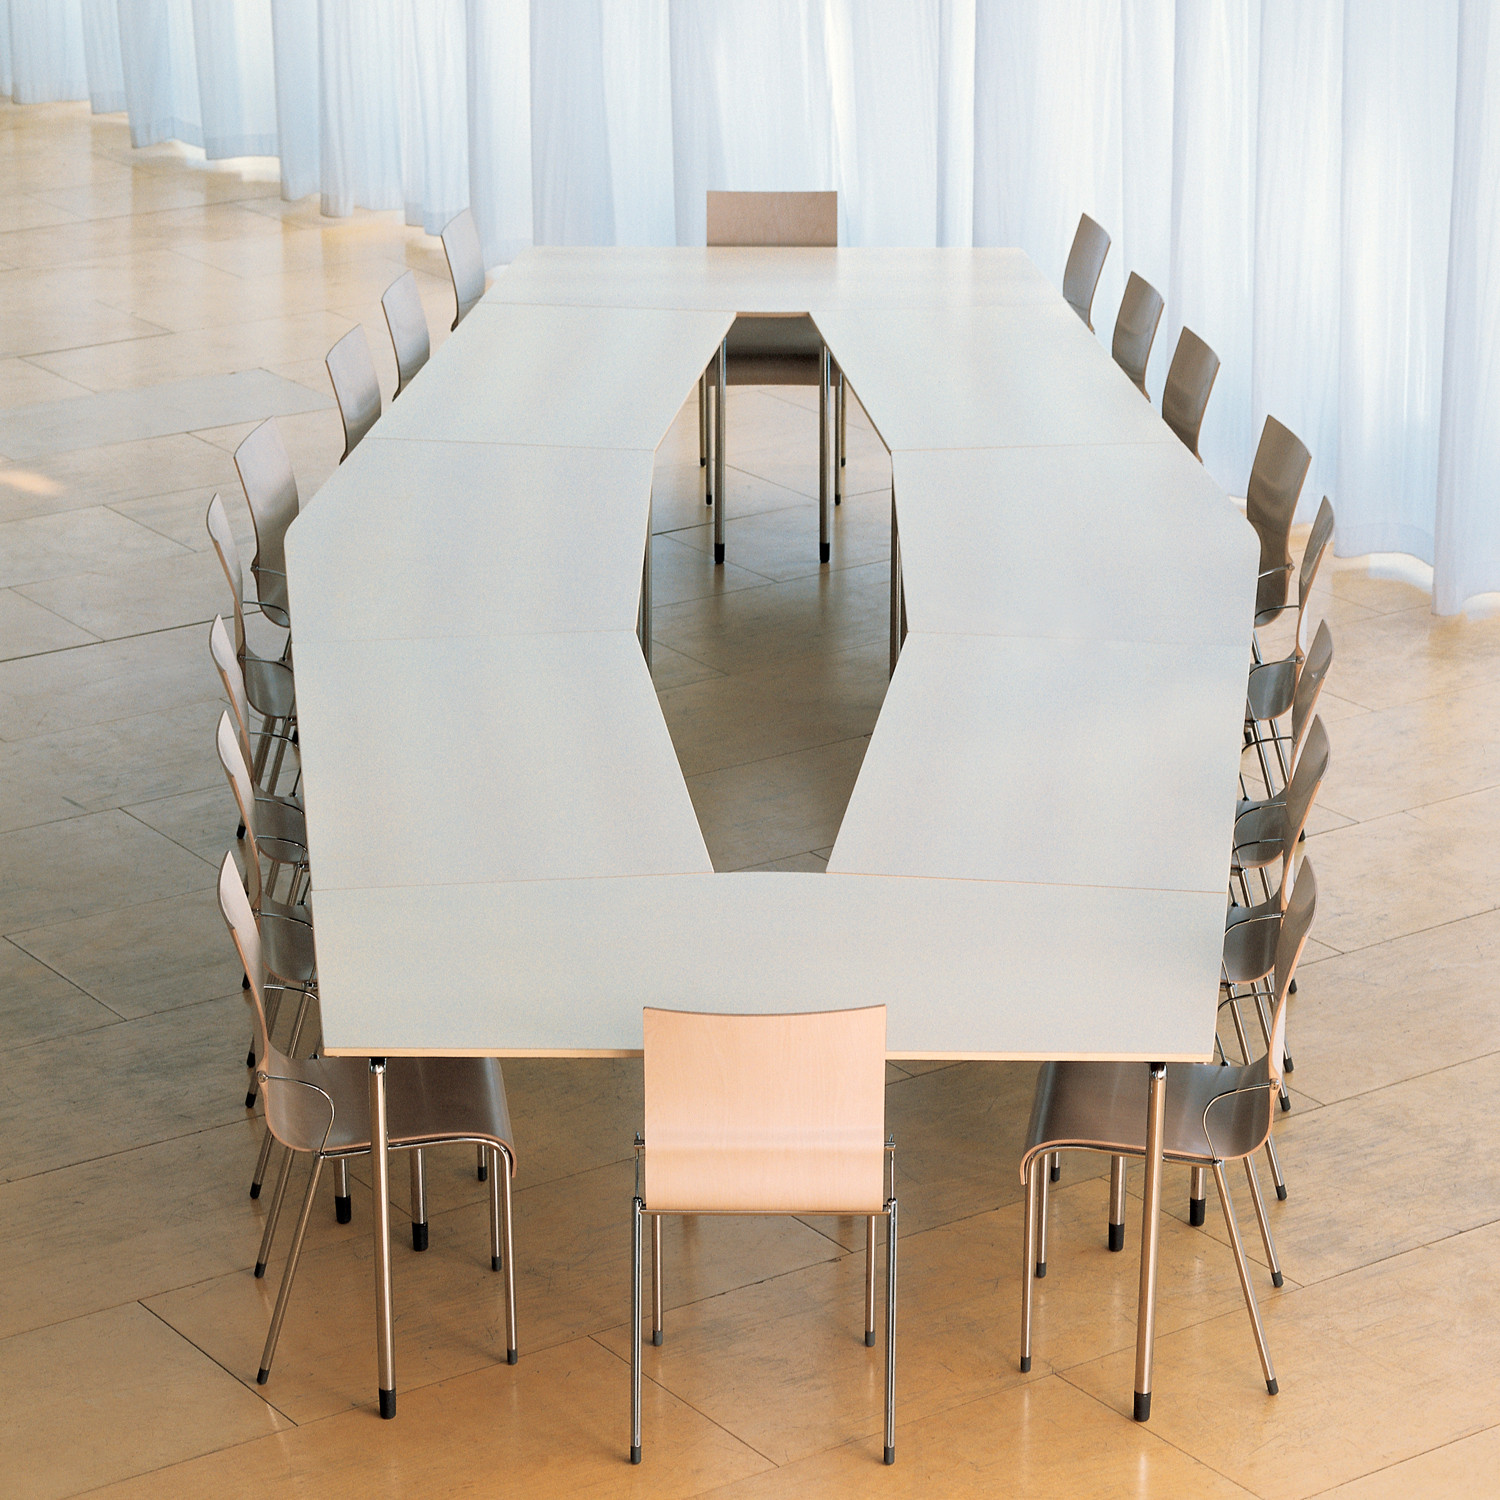 How Plico Modular Conference Tables